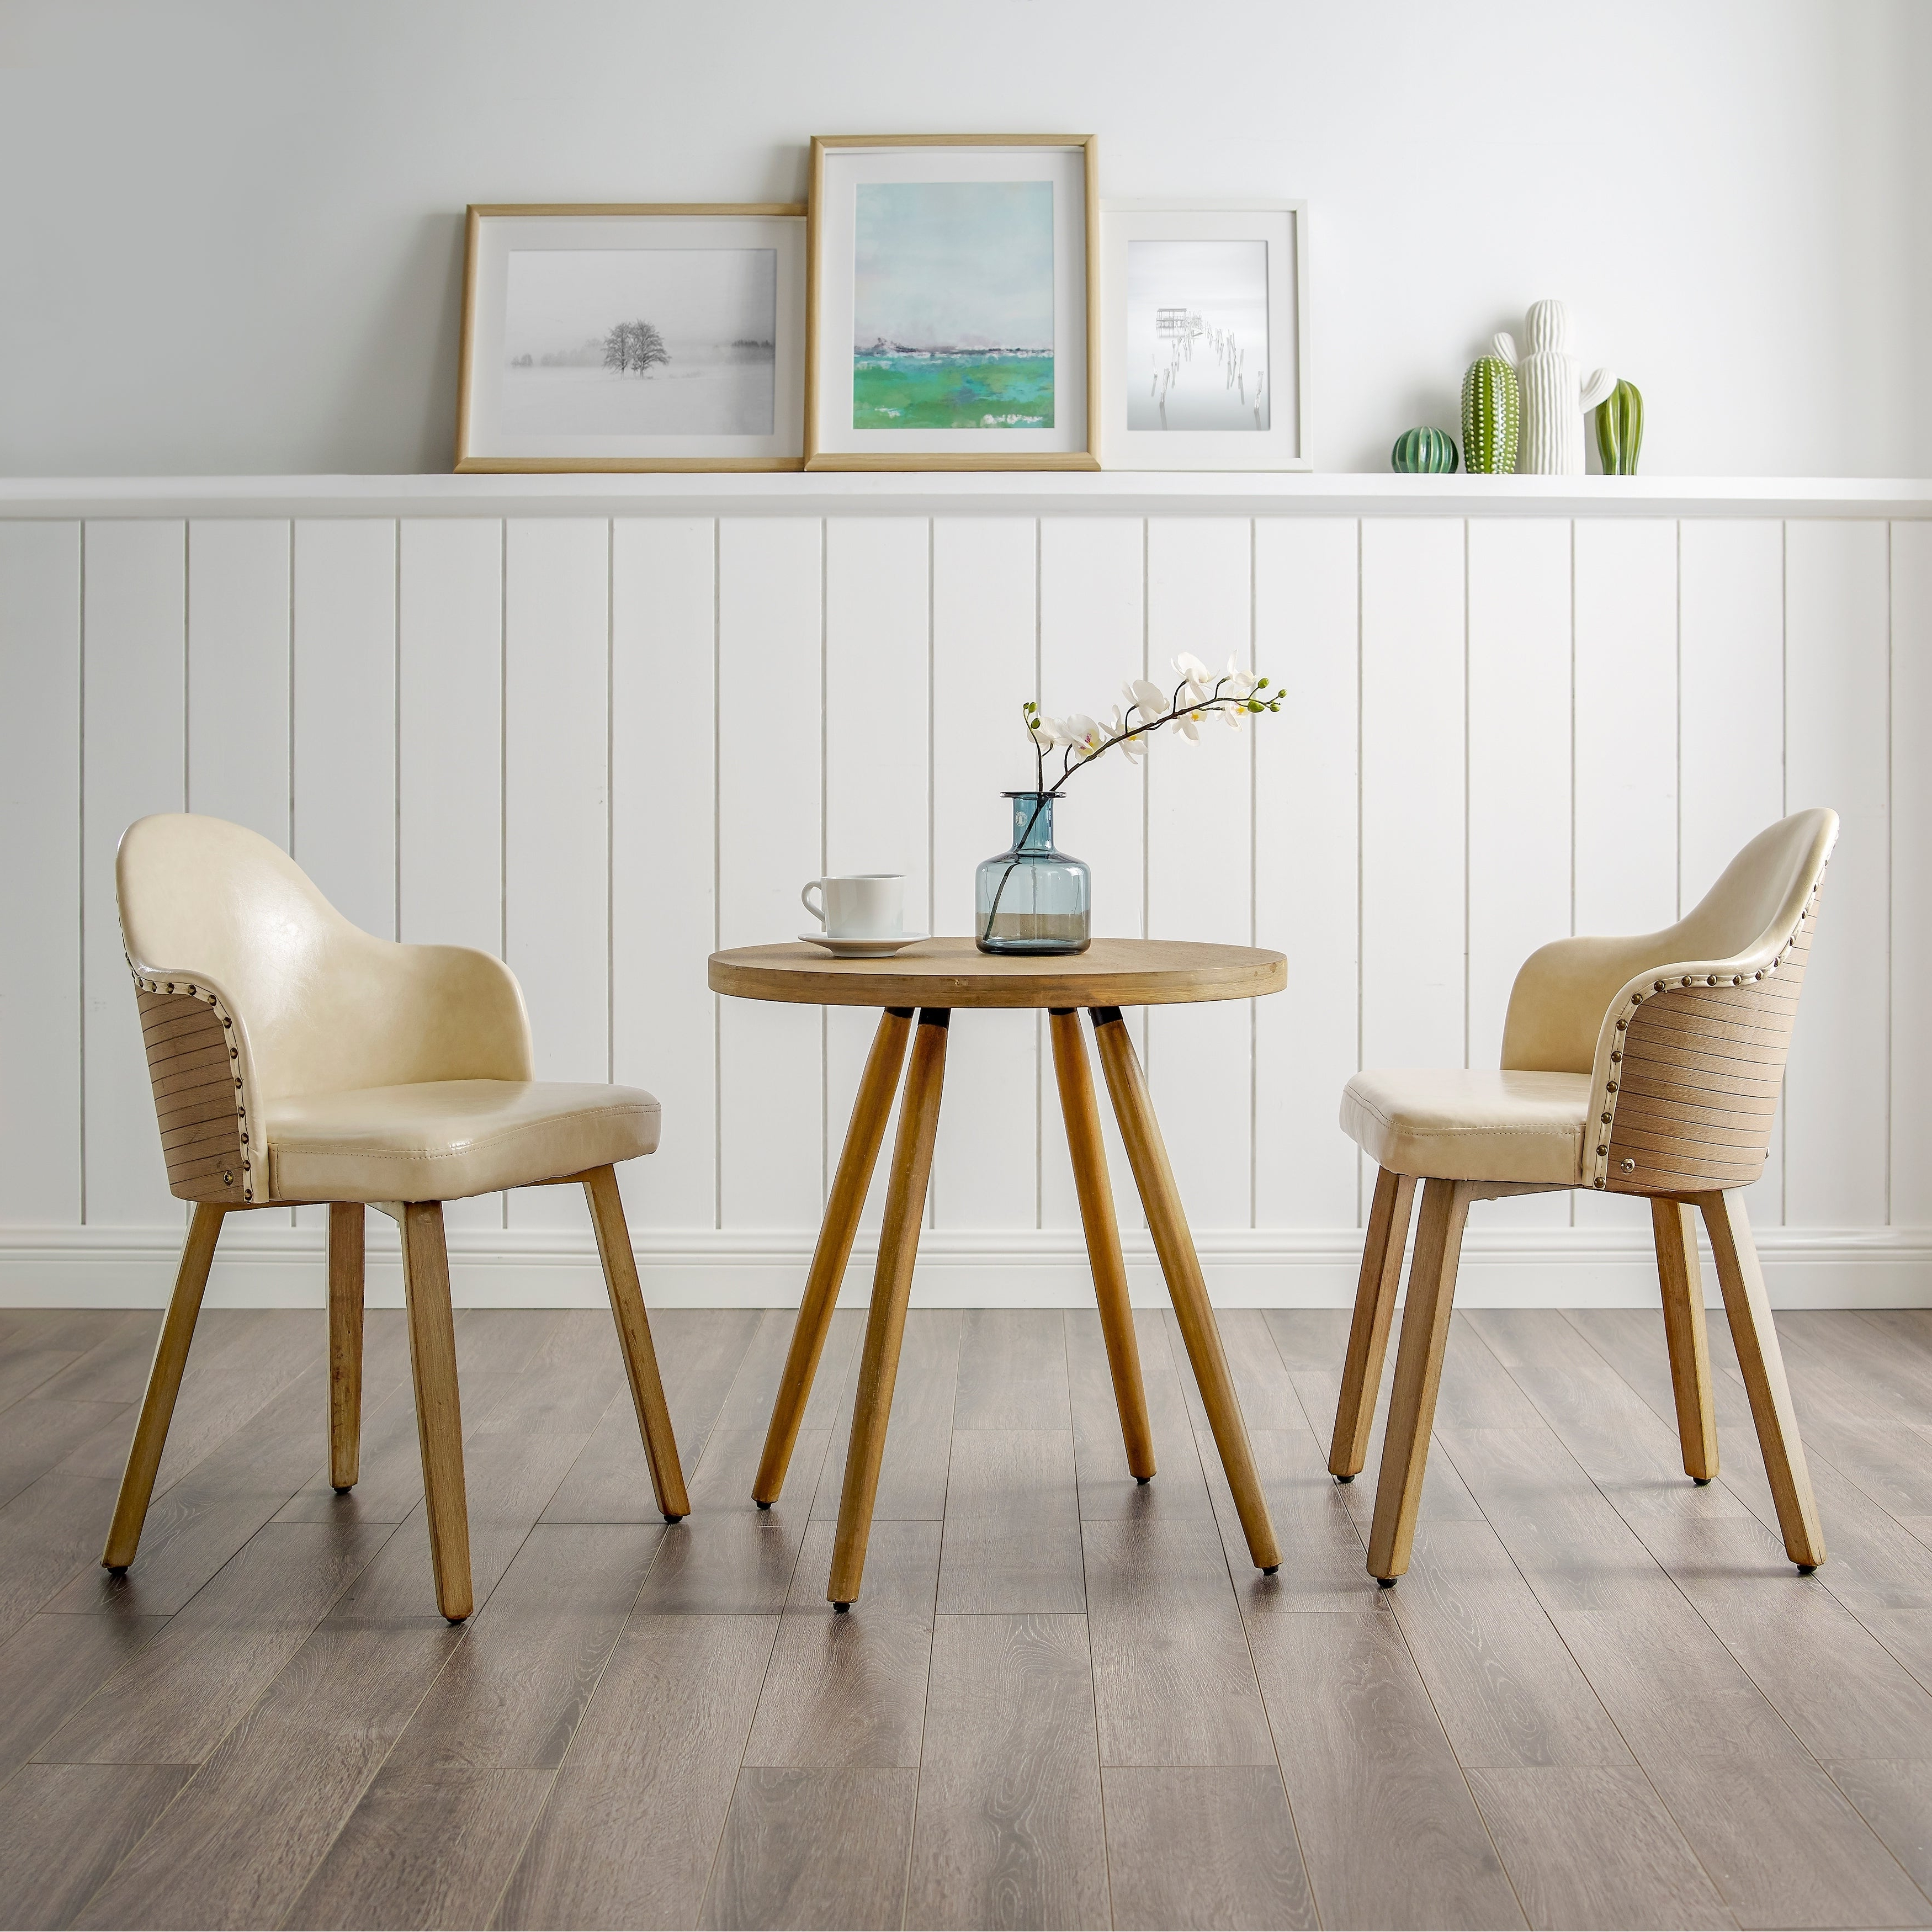 Most Recently Released 3 Piece Dining Sets With Regard To Carson Carrington Ylivieska Mid Century Bamboo 3 Piece Dining Set (View 16 of 20)